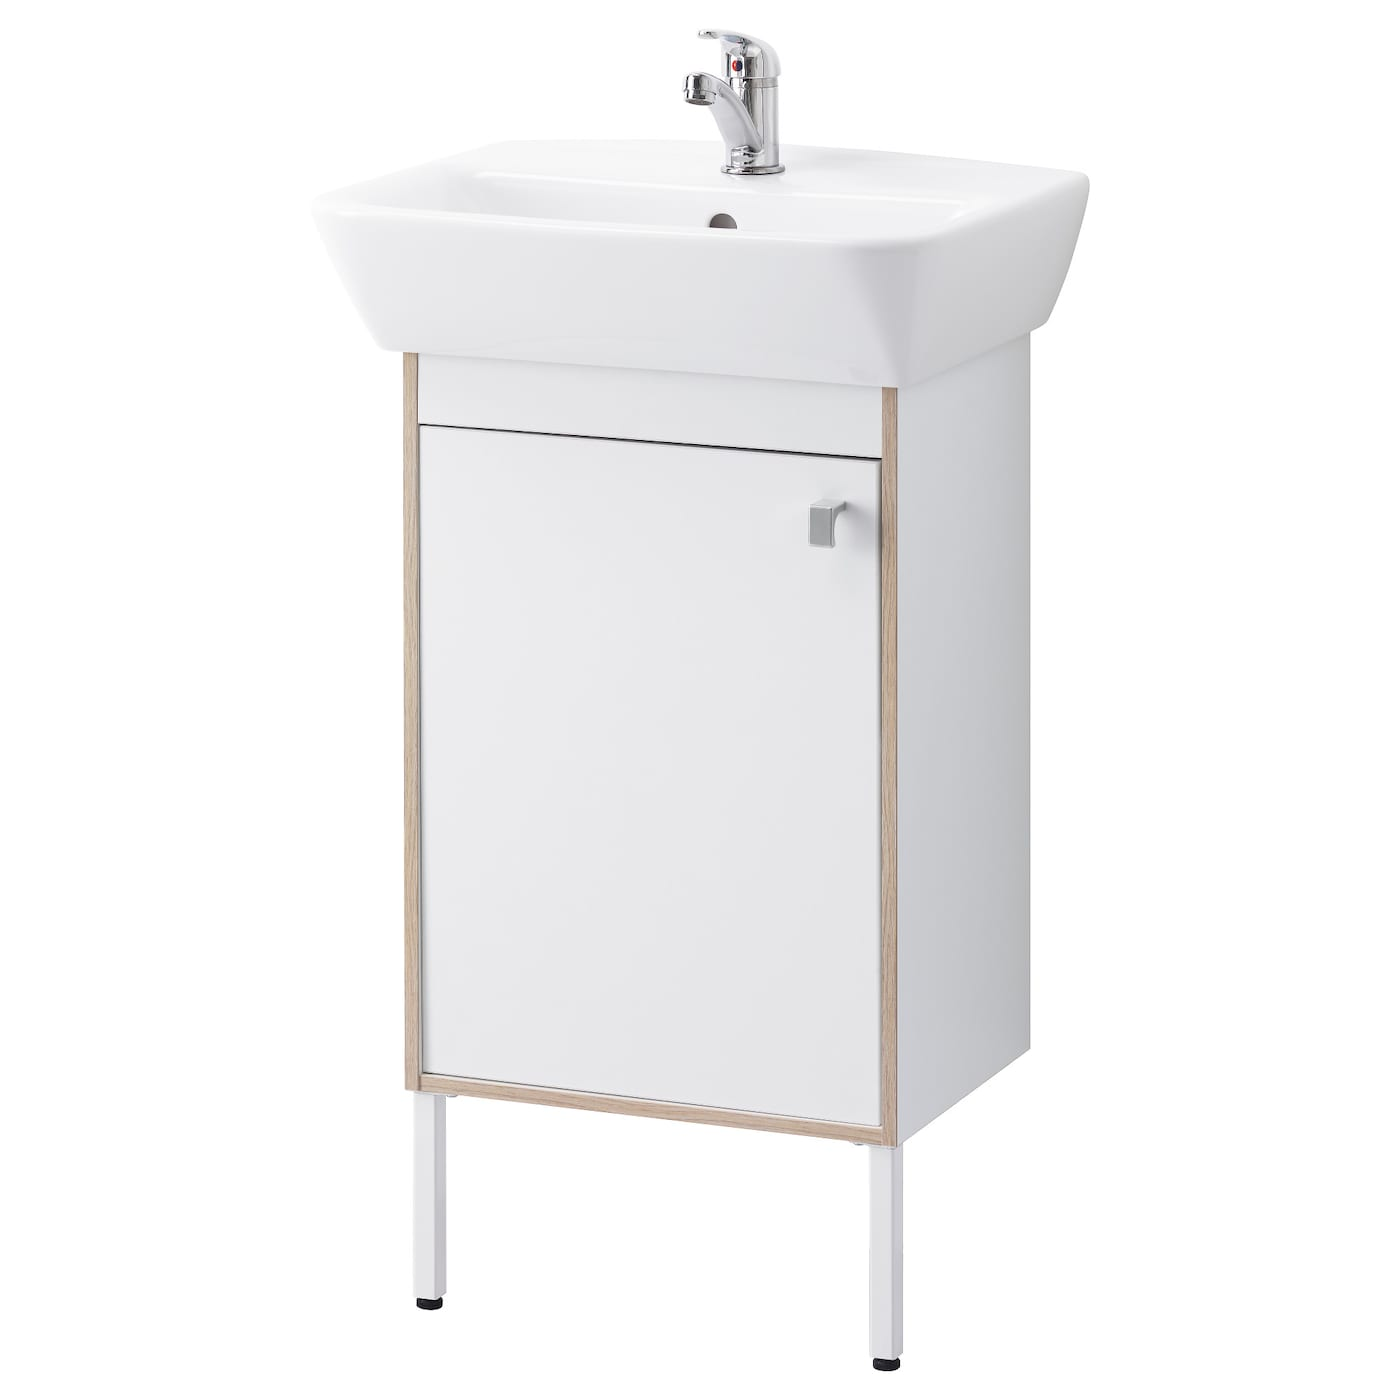 ikea bathroom cabinet white tyngen washbasin cabinet with 1 door white 51x40x88 cm ikea 17525